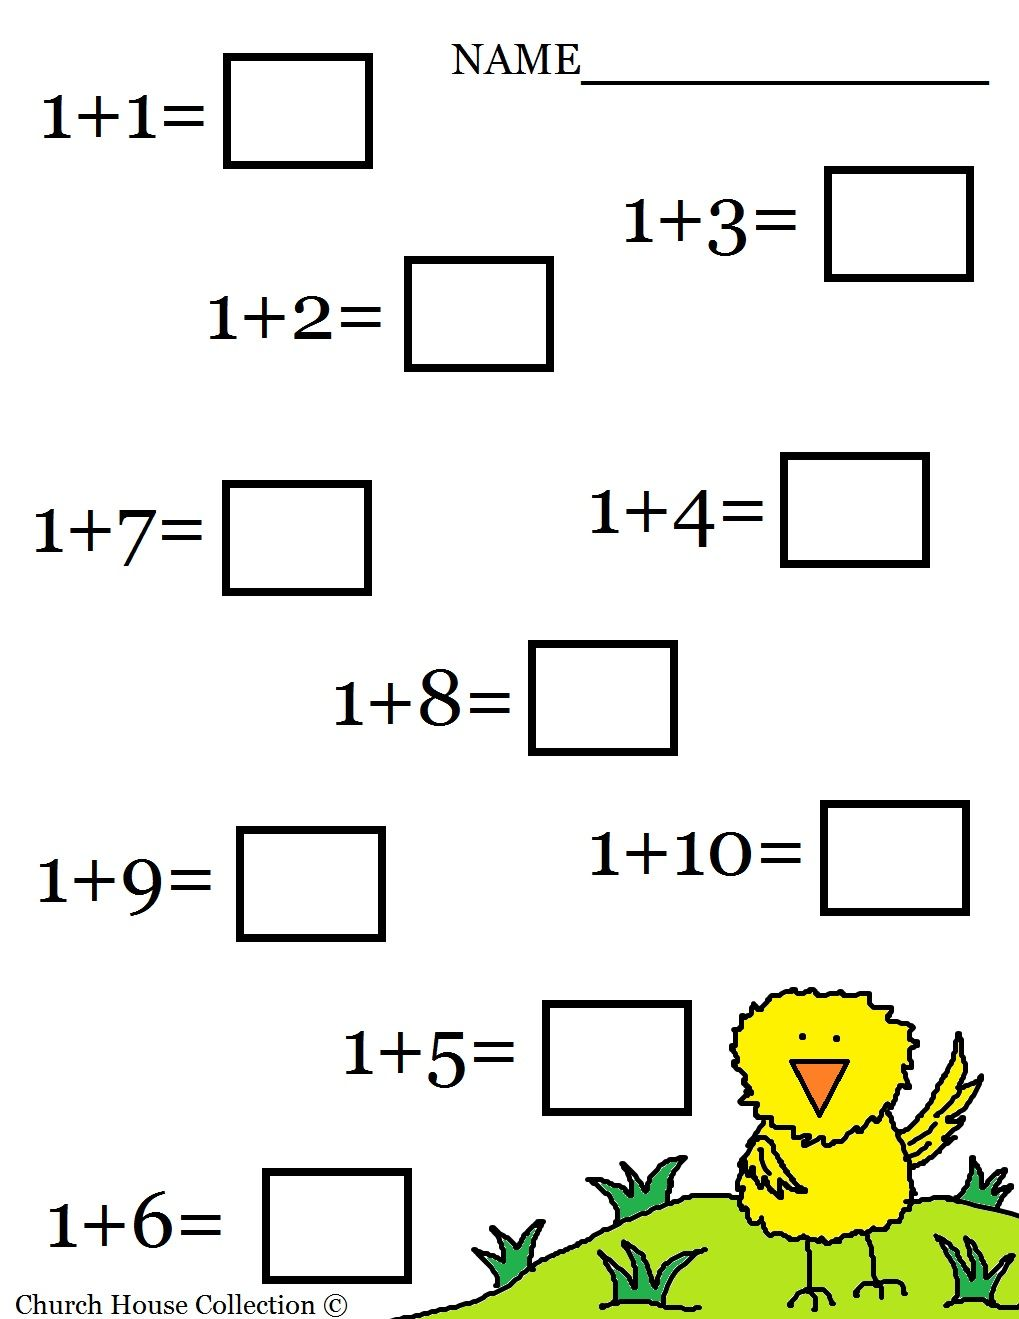 Aldiablosus  Nice  Images About Worksheets  Math On Pinterest  Math Sheets  With Extraordinary  Images About Worksheets  Math On Pinterest  Math Sheets Math Worksheets For Kindergarten And Simple Addition With Adorable Math Worksheet Maker Also Housing Allowance Worksheet In Addition Six Grade Math Worksheets And Postalease Fehb Worksheet As Well As Writing Inequalities From Word Problems Worksheet Additionally Sentence Structure Worksheet From Pinterestcom With Aldiablosus  Extraordinary  Images About Worksheets  Math On Pinterest  Math Sheets  With Adorable  Images About Worksheets  Math On Pinterest  Math Sheets Math Worksheets For Kindergarten And Simple Addition And Nice Math Worksheet Maker Also Housing Allowance Worksheet In Addition Six Grade Math Worksheets From Pinterestcom